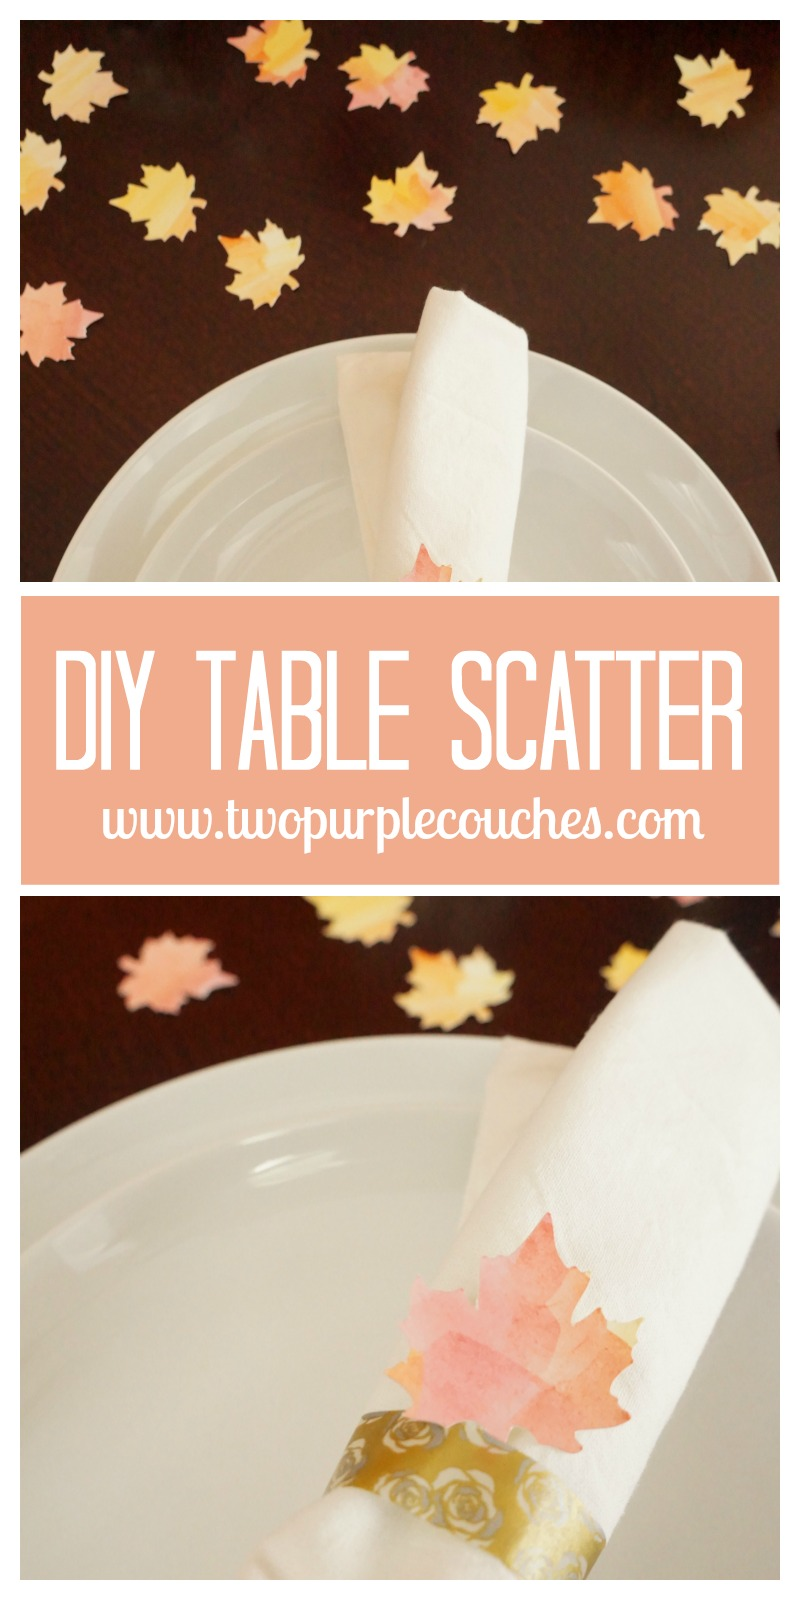 Make your own table scatter from watercolors—perfect for Thanksgiving dinner! via ww.twopurplecouches.com